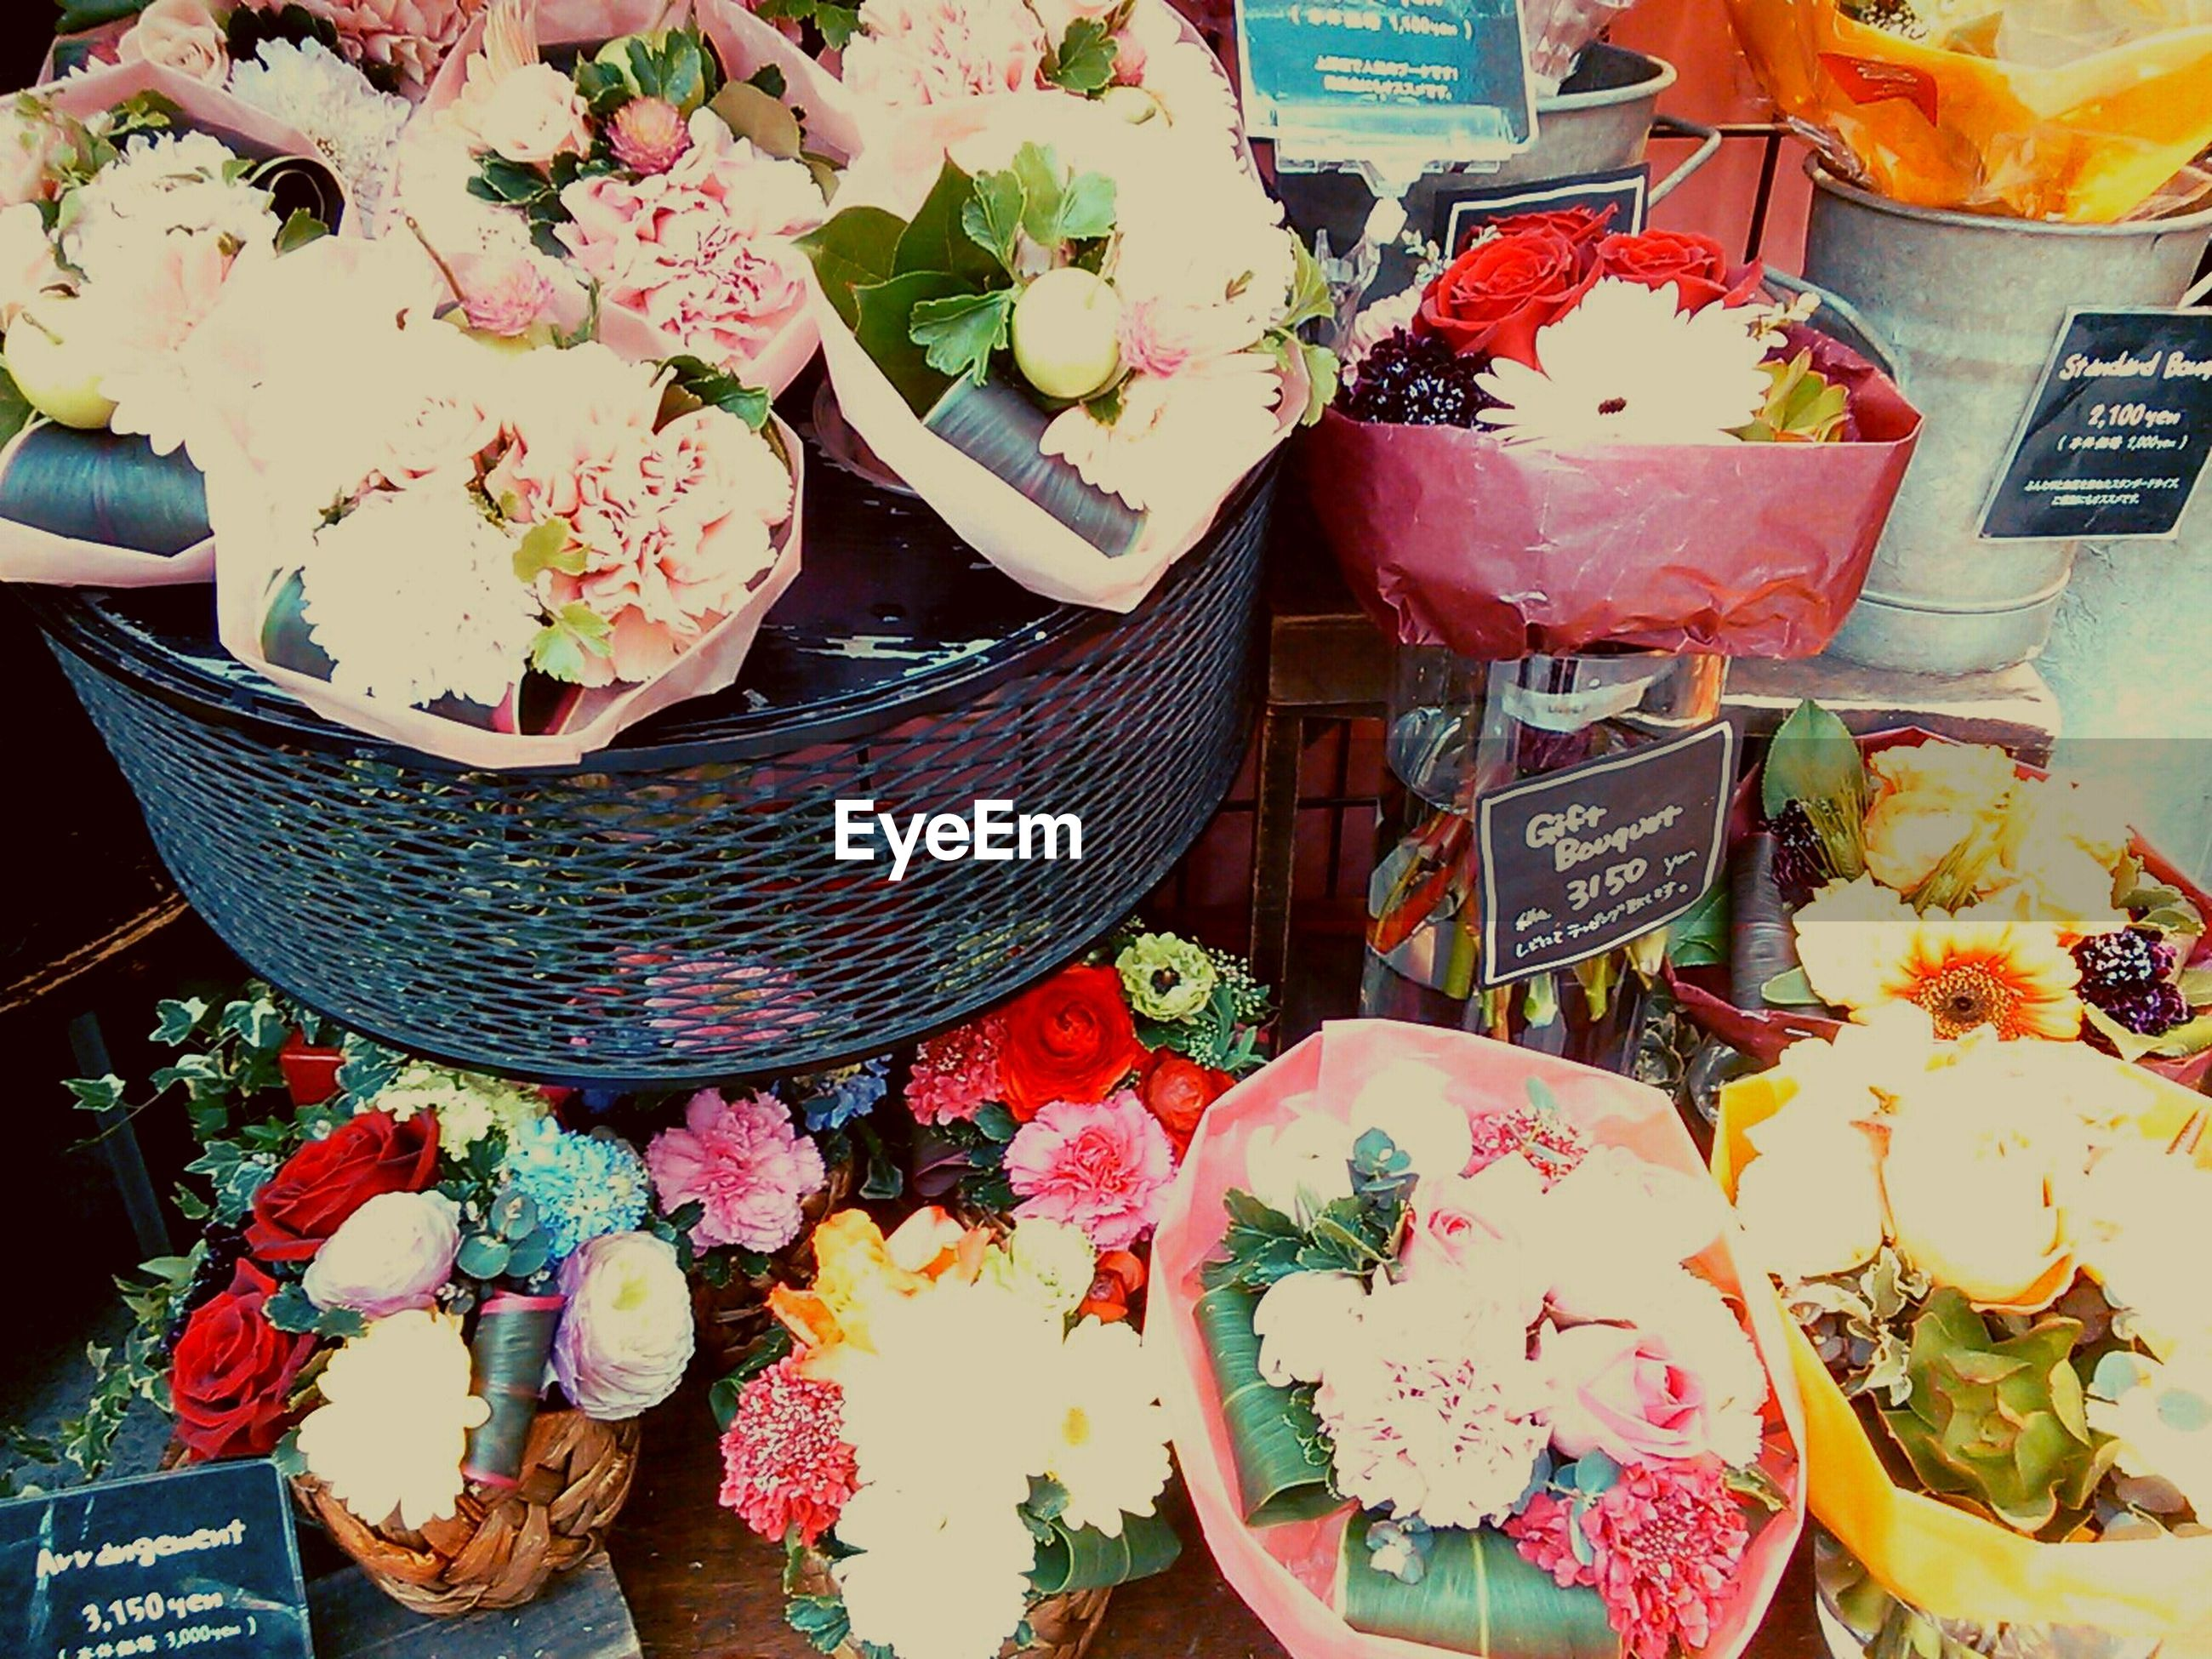 indoors, flower, freshness, variation, bouquet, multi colored, table, high angle view, choice, retail, for sale, decoration, food, food and drink, abundance, arrangement, vase, large group of objects, market stall